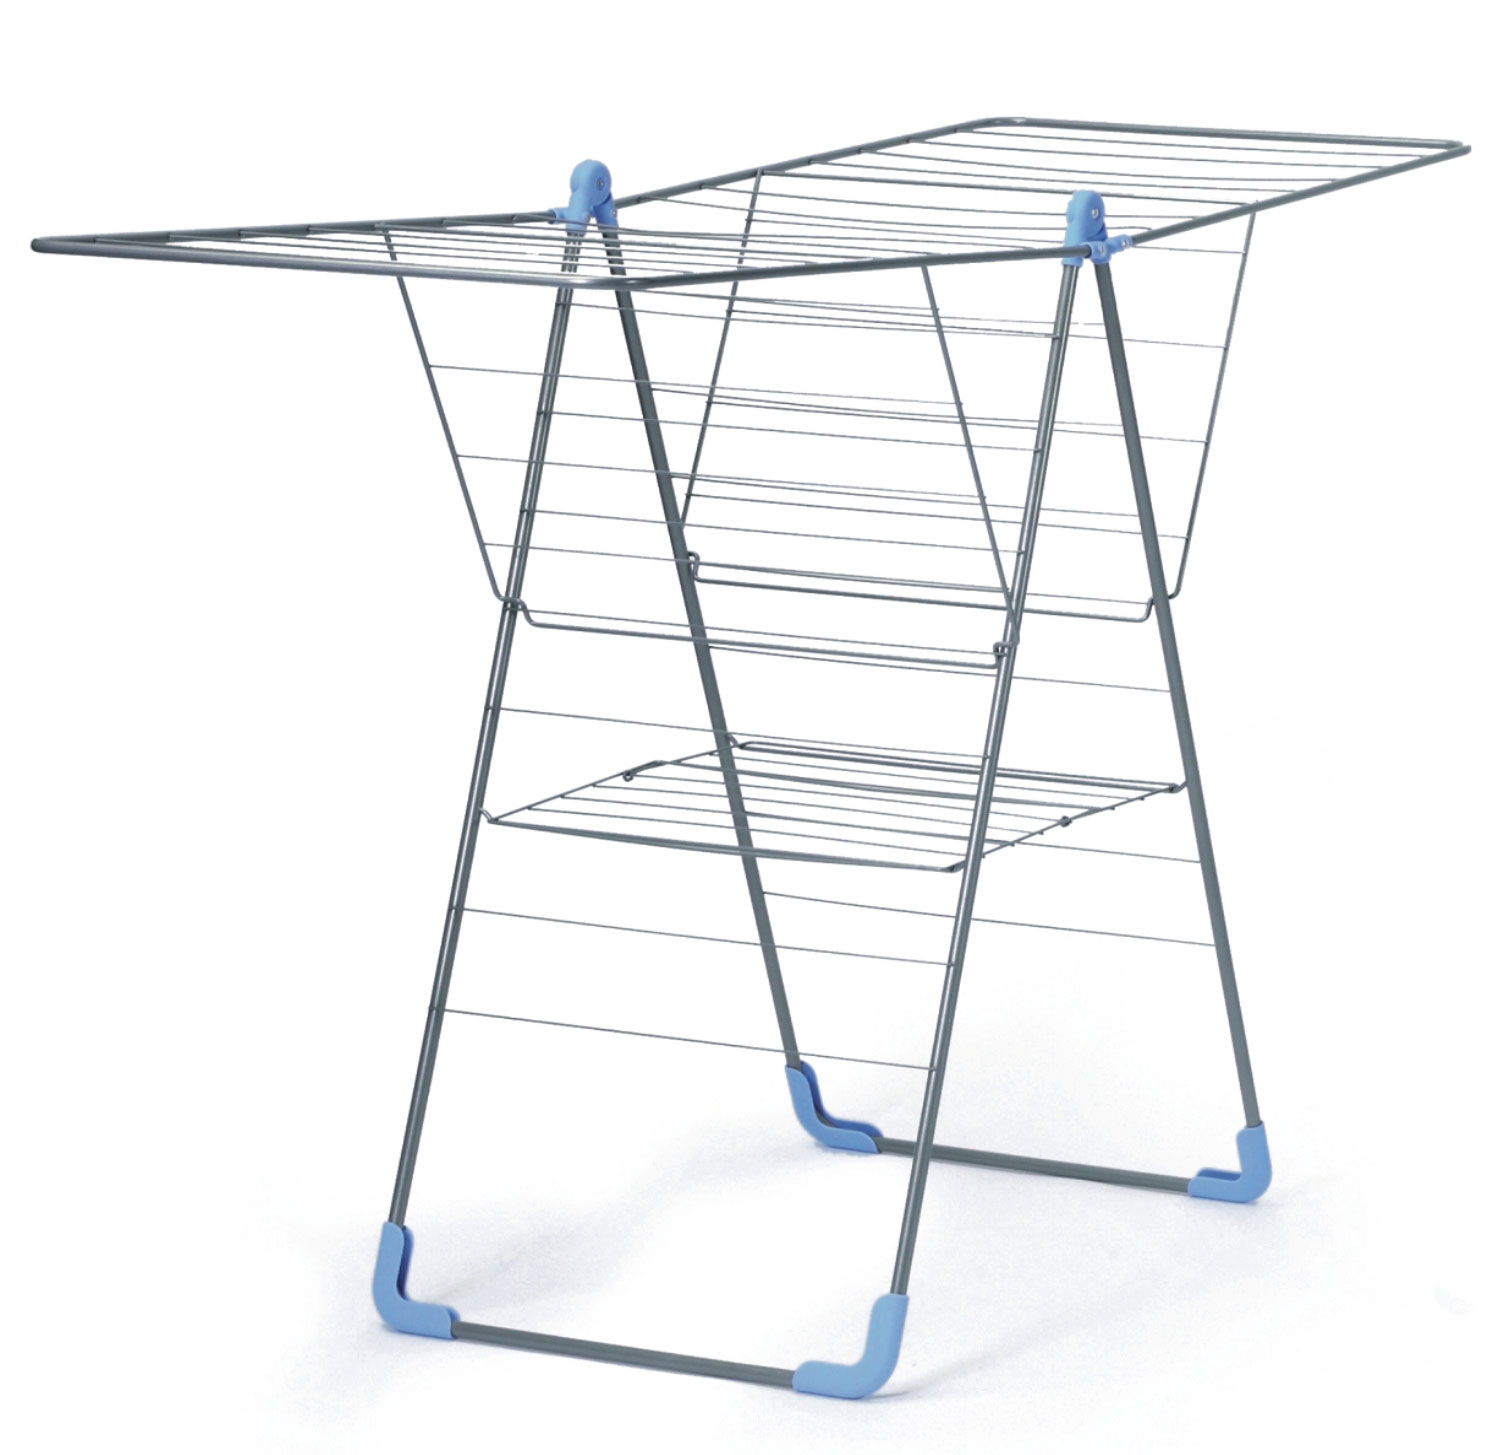 y airer clothes drying rack by moerman americas in laundry drying racks. Black Bedroom Furniture Sets. Home Design Ideas